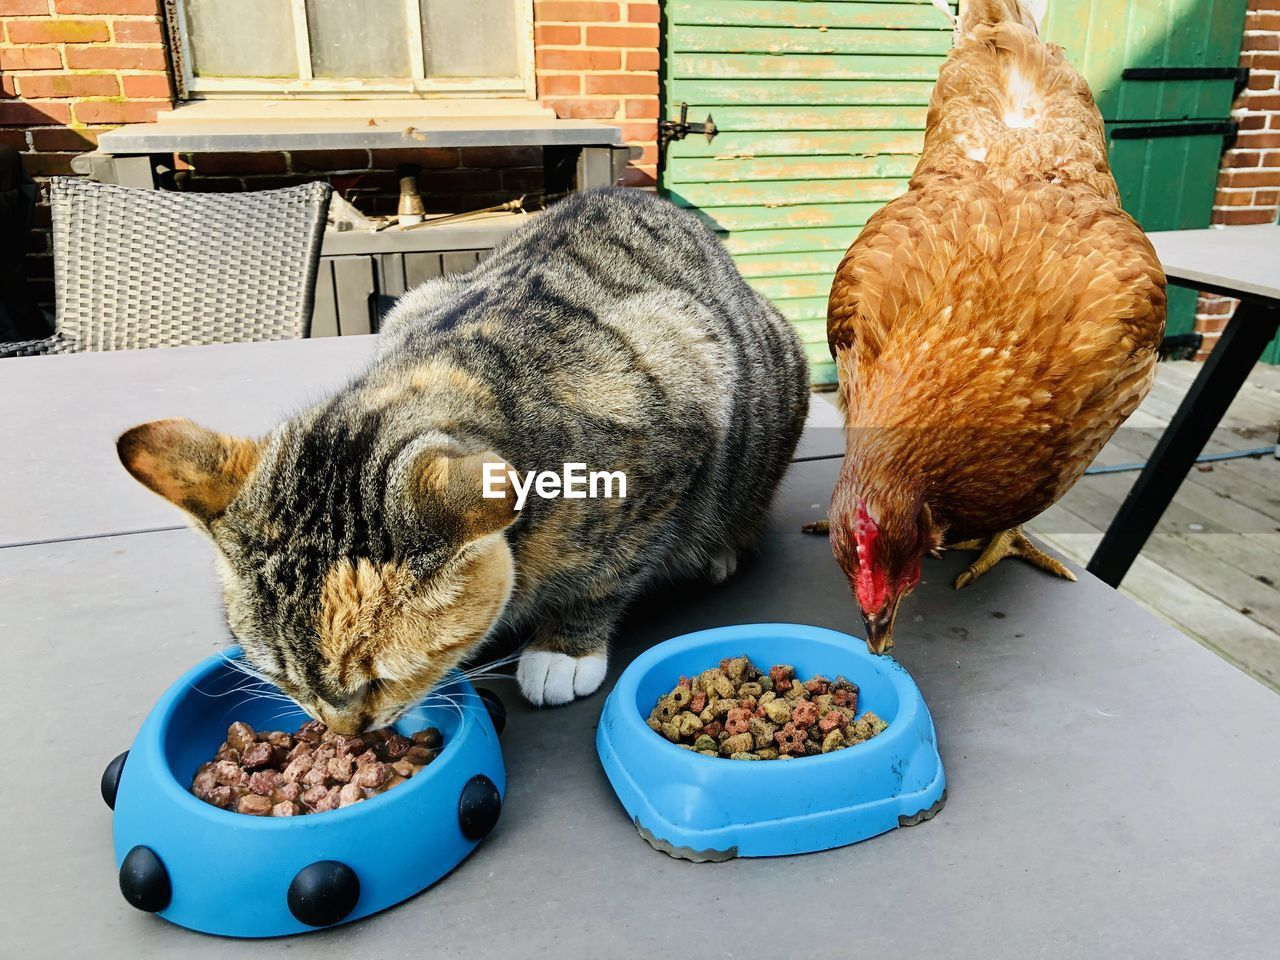 mammal, domestic, animal, pets, domestic animals, animal themes, domestic cat, vertebrate, cat, food, feline, eating, food and drink, no people, one animal, feeding, bowl, indoors, day, whisker